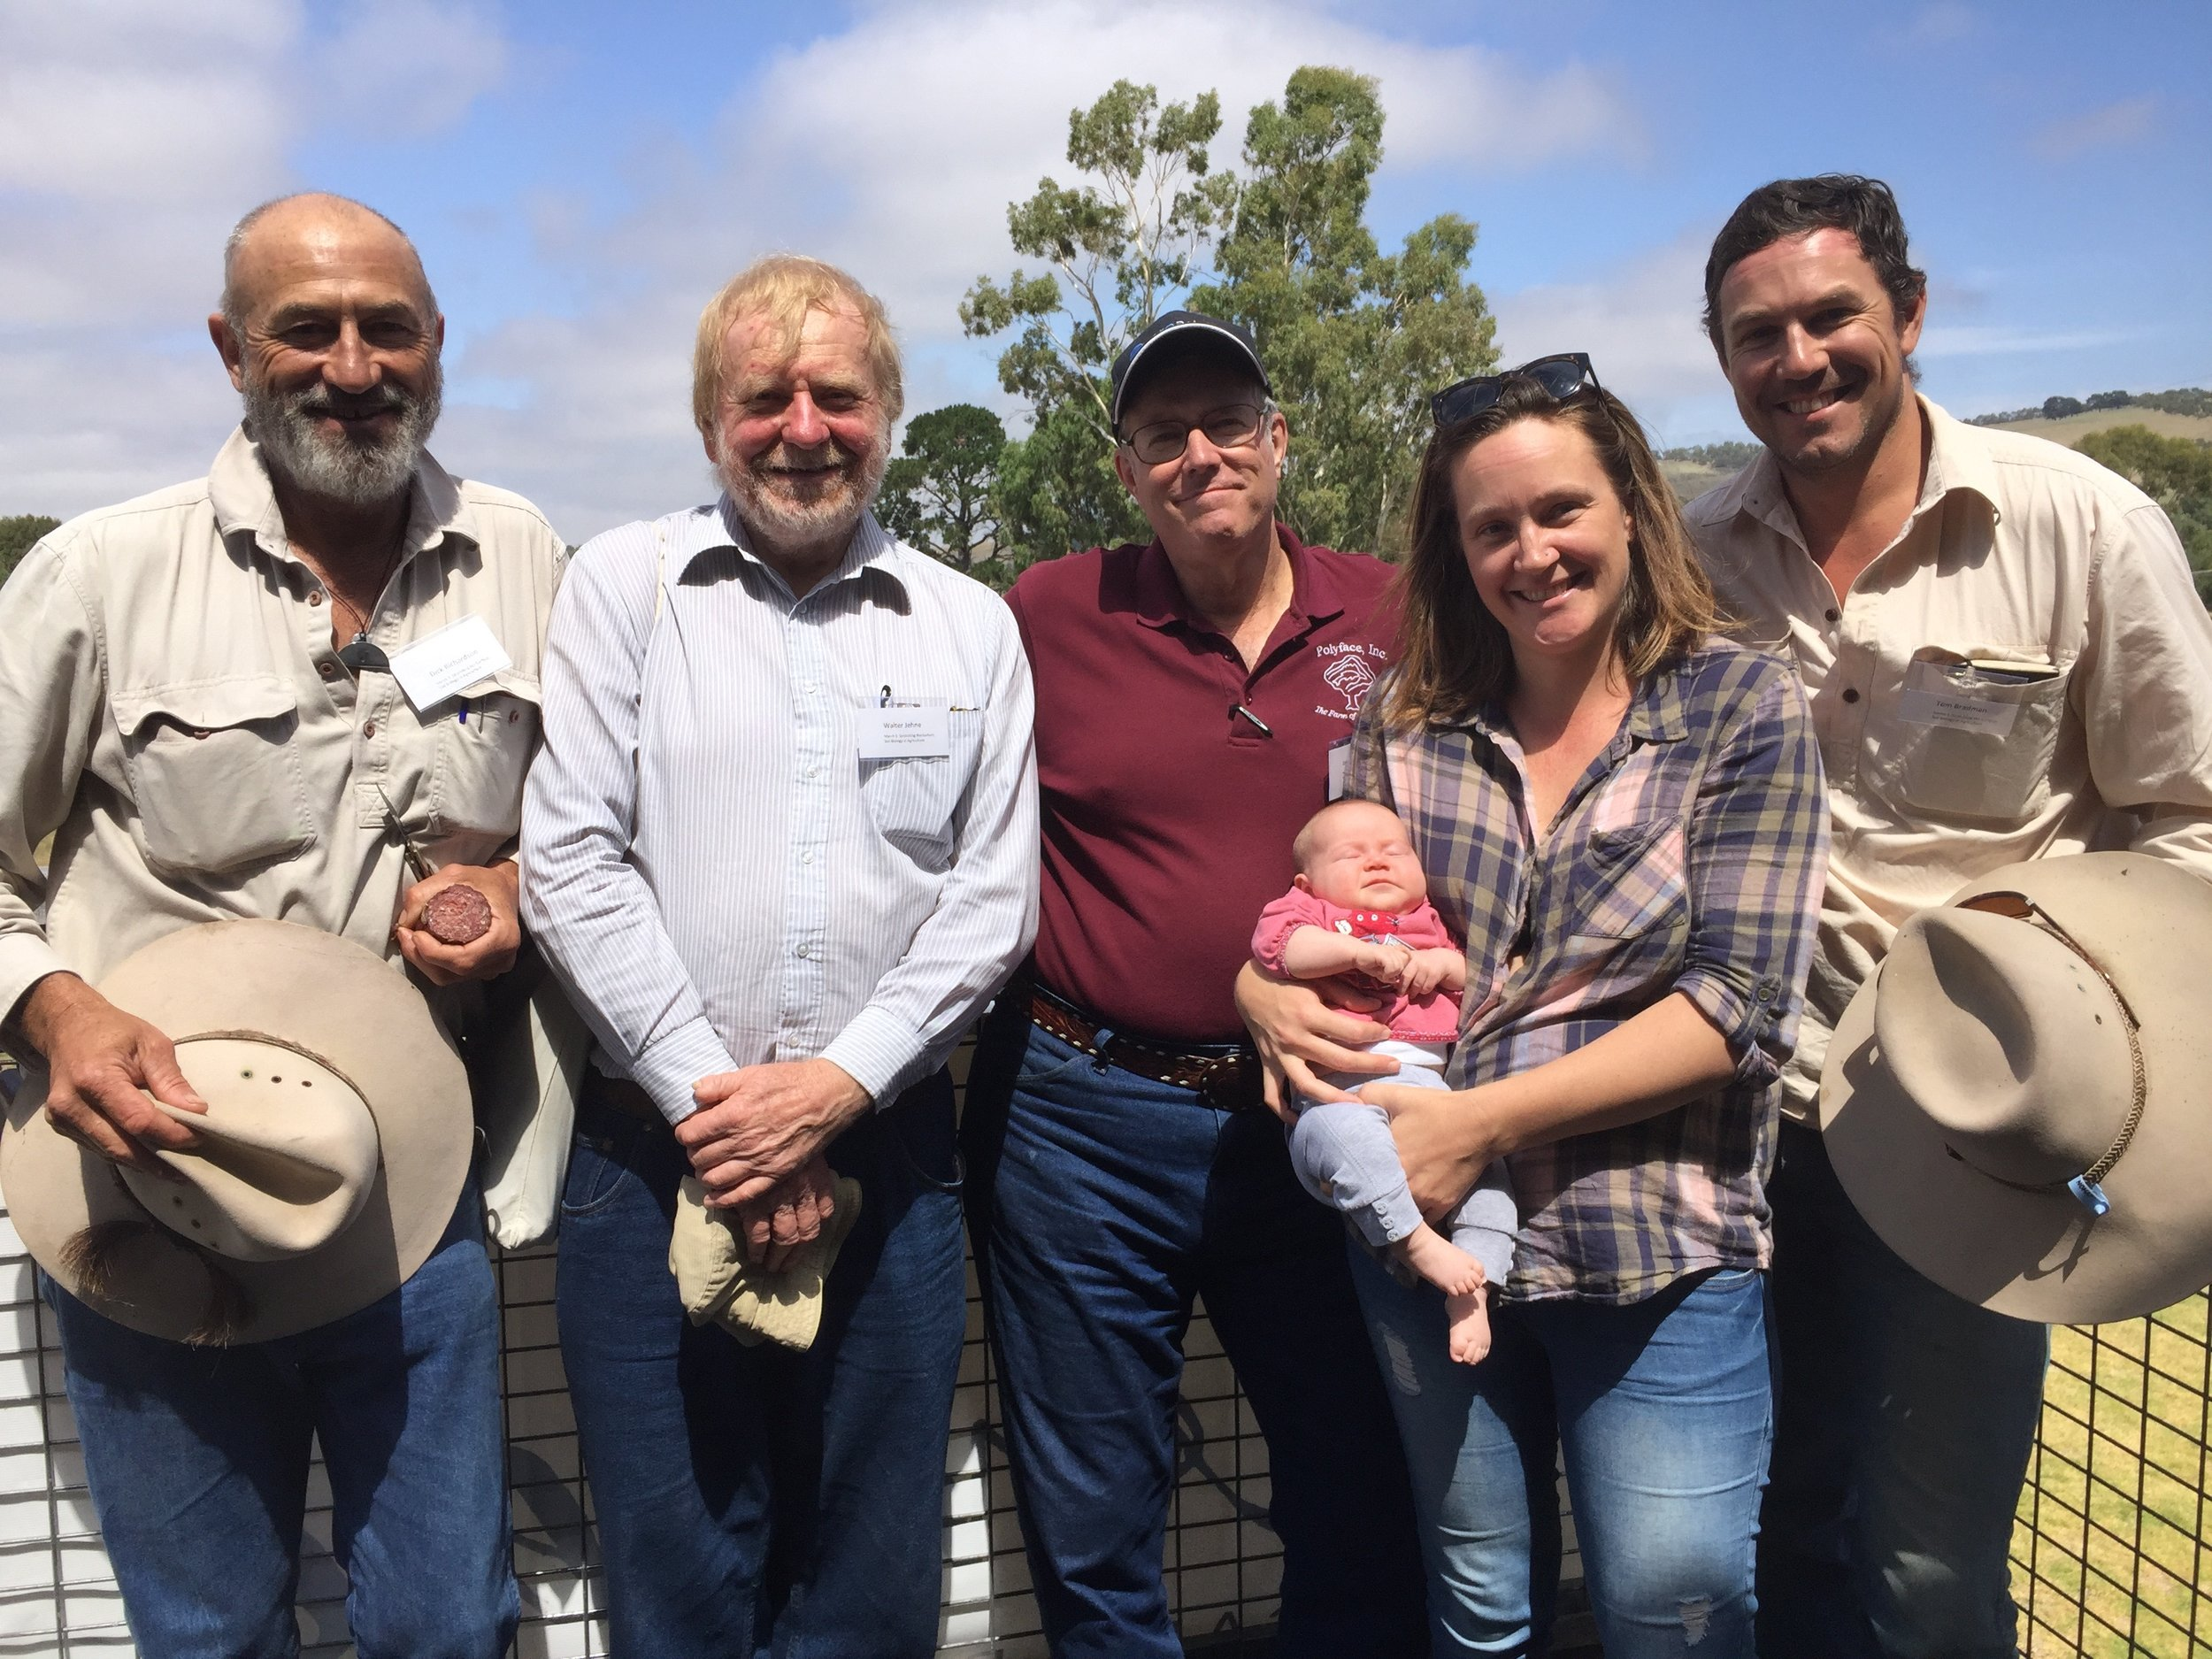 Above: Dick Richardson, Walter Jehne, Joel Salatin, Baby Laura Bradman, Verity Slee and Tom Bradman.  The farm walk was jointly hosted by the Ranges to River Natural Resources Management Group, SA Murray-Darling Basin Natural Resources Management (NRM) Board, the Adelaide and Mount Lofty Ranges NRM Board and the Kangaroo Island NRM Board with funding from the Australian Government's National Landcare Programme, NRM Levies and the Regional Landcare Facilitator Programme.